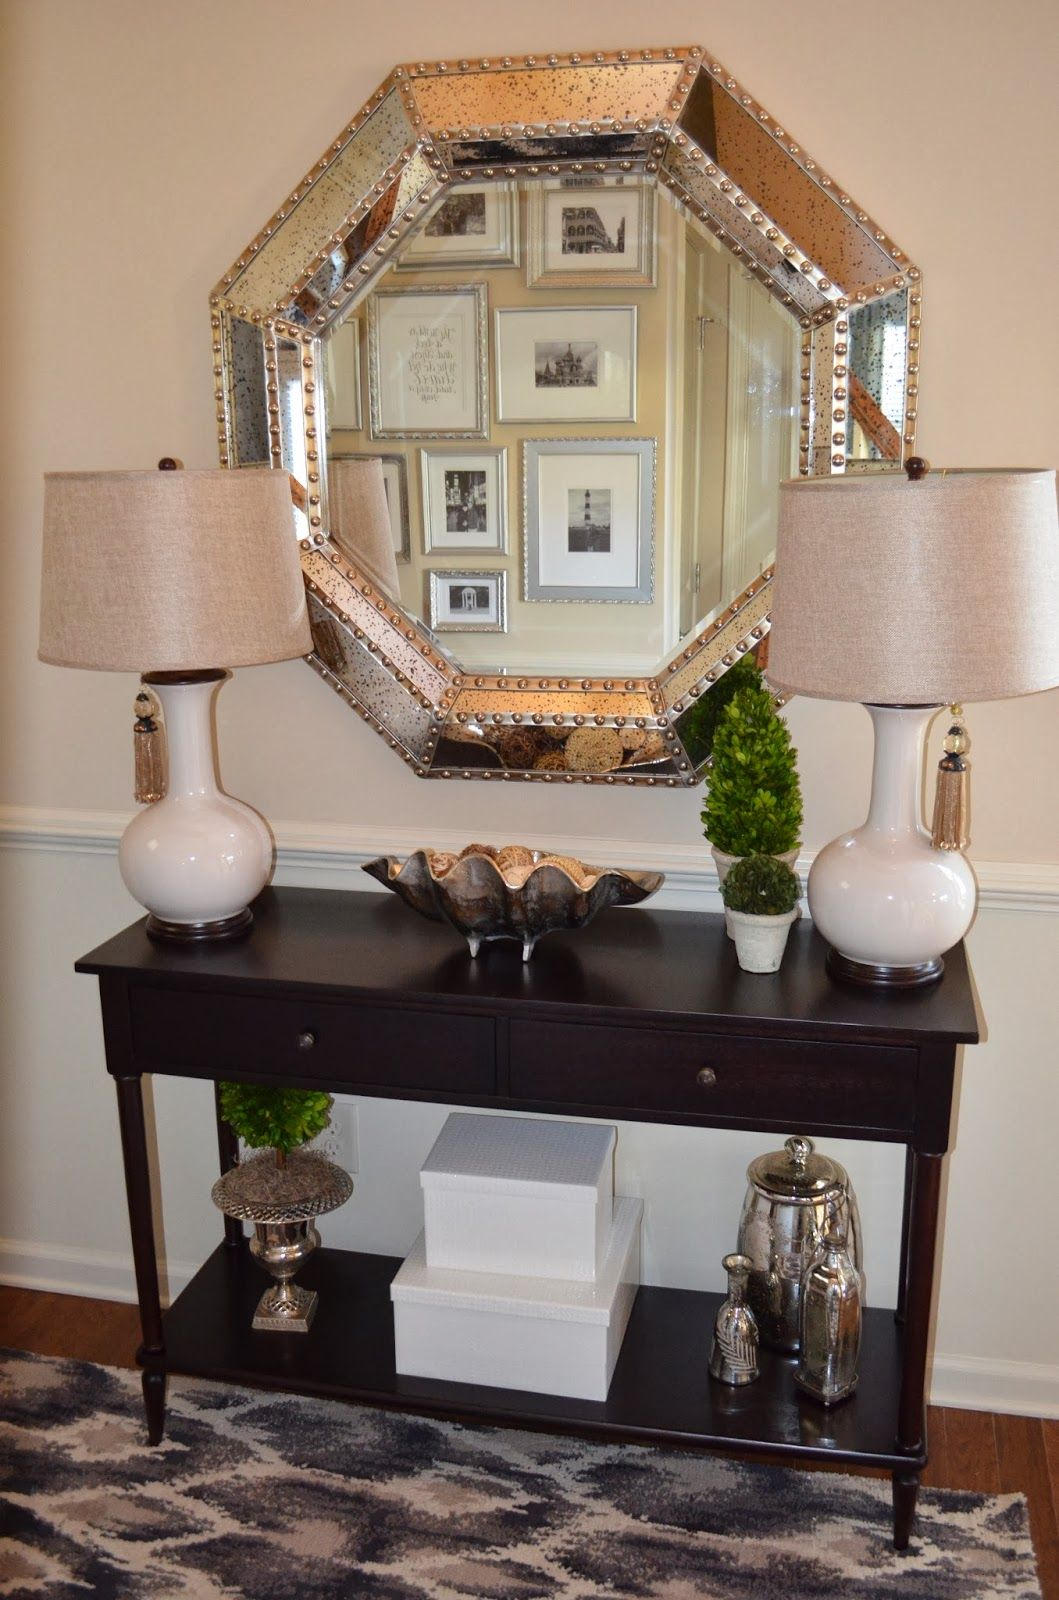 Foyer Decor With Entryway Console Table And Large Silver